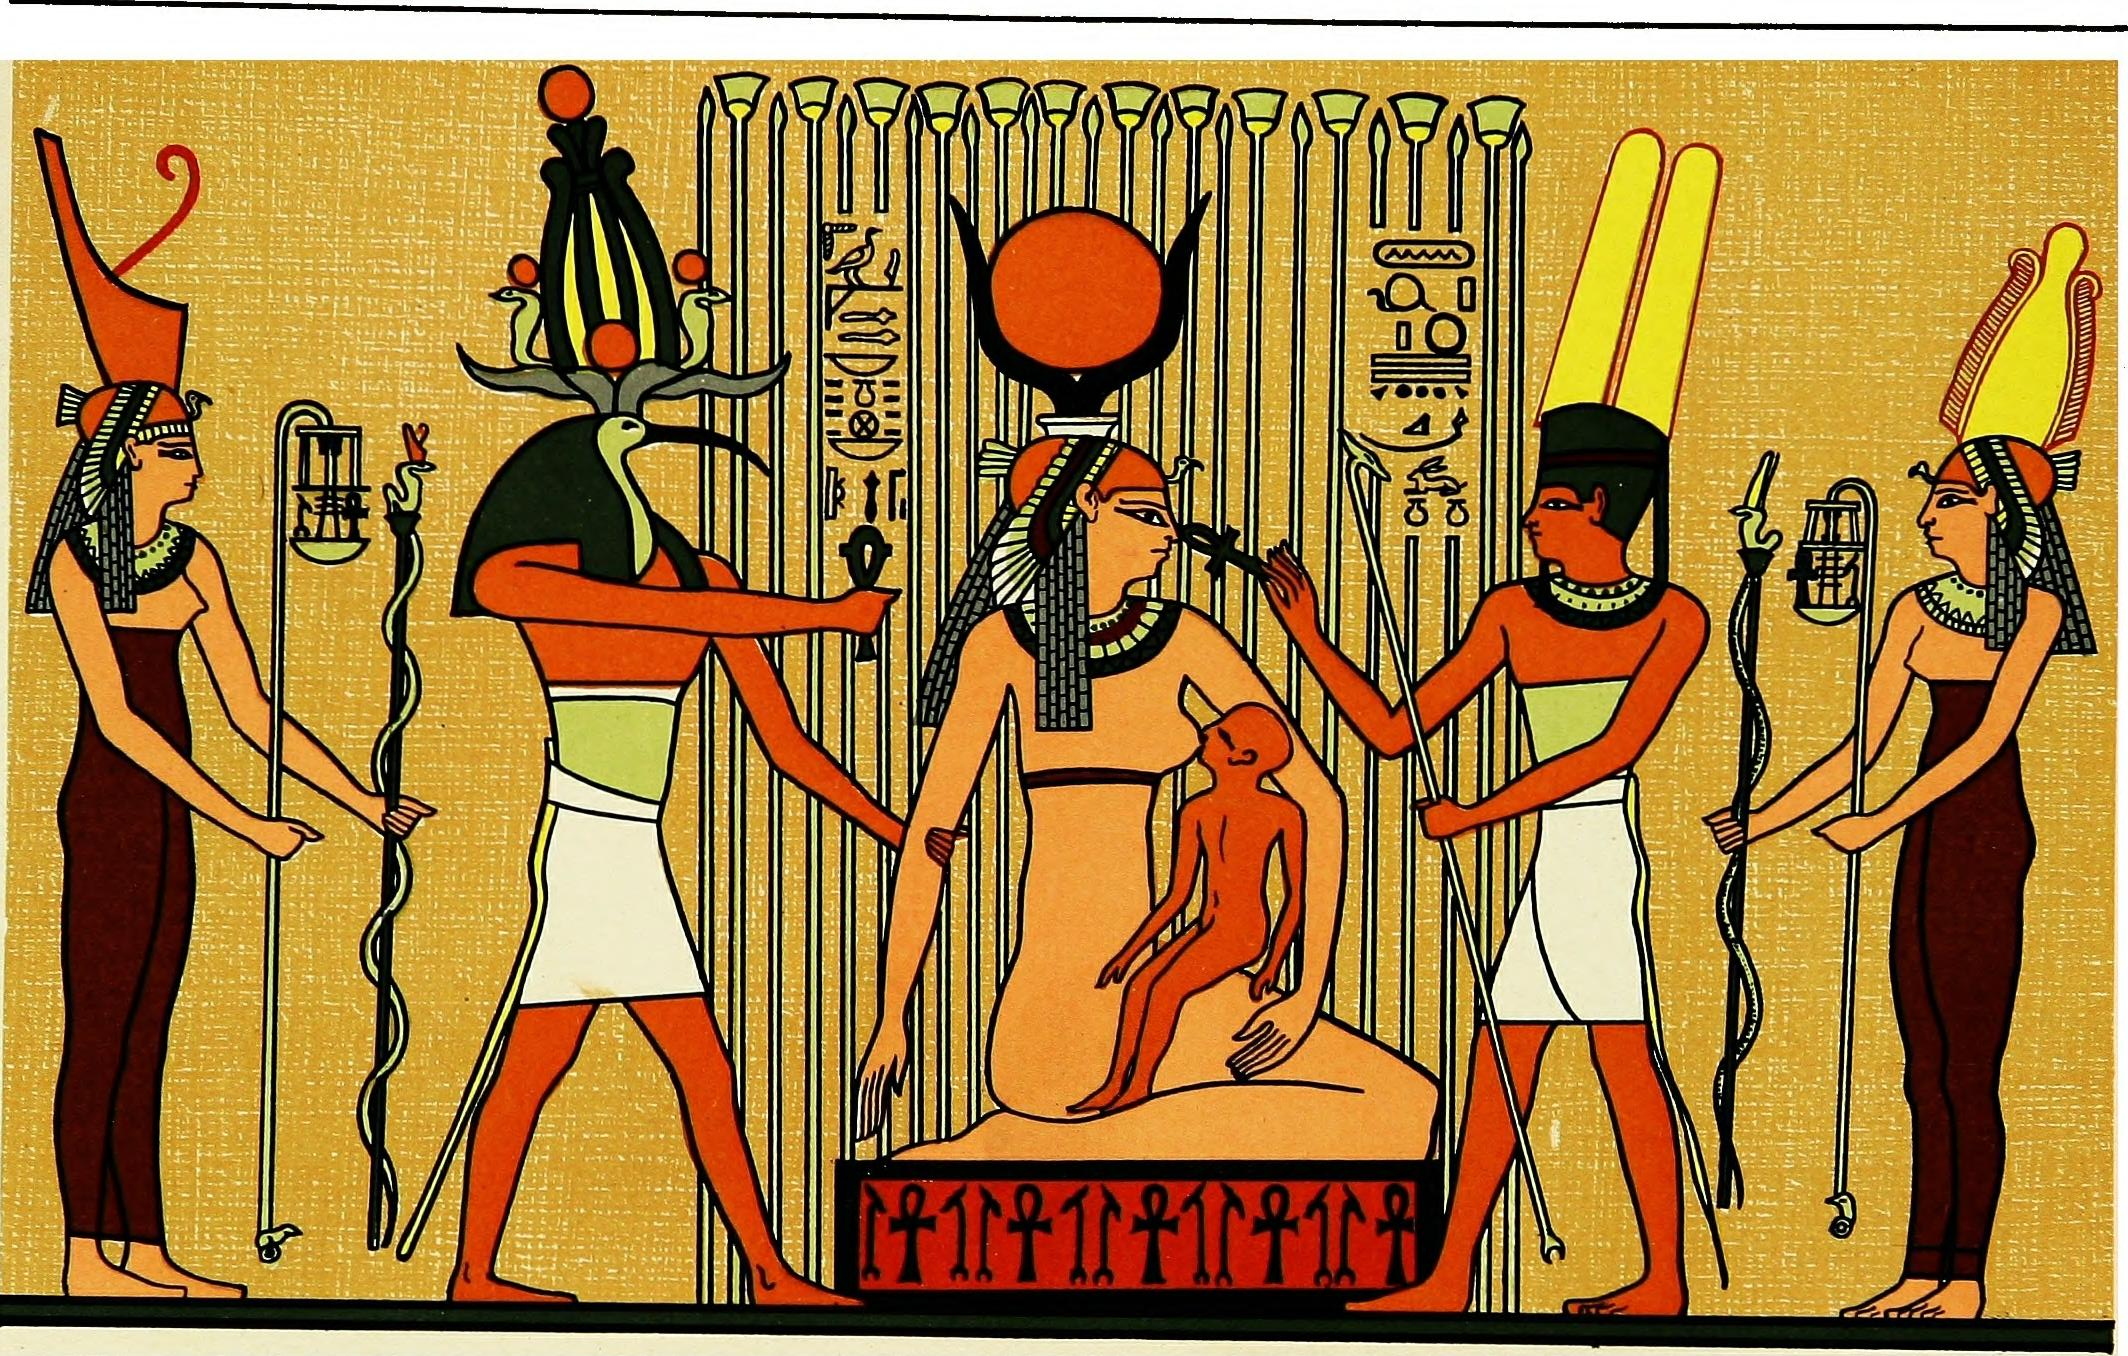 a look at the creation mythologies of ancient egyptians What happens after death how was the world created where does the sun go at night lacking any real scientific understanding they answered their own questions with a series of myths and legends designed to explain the otherwise inexplicable some of these myths passed from egypt to rome, and.